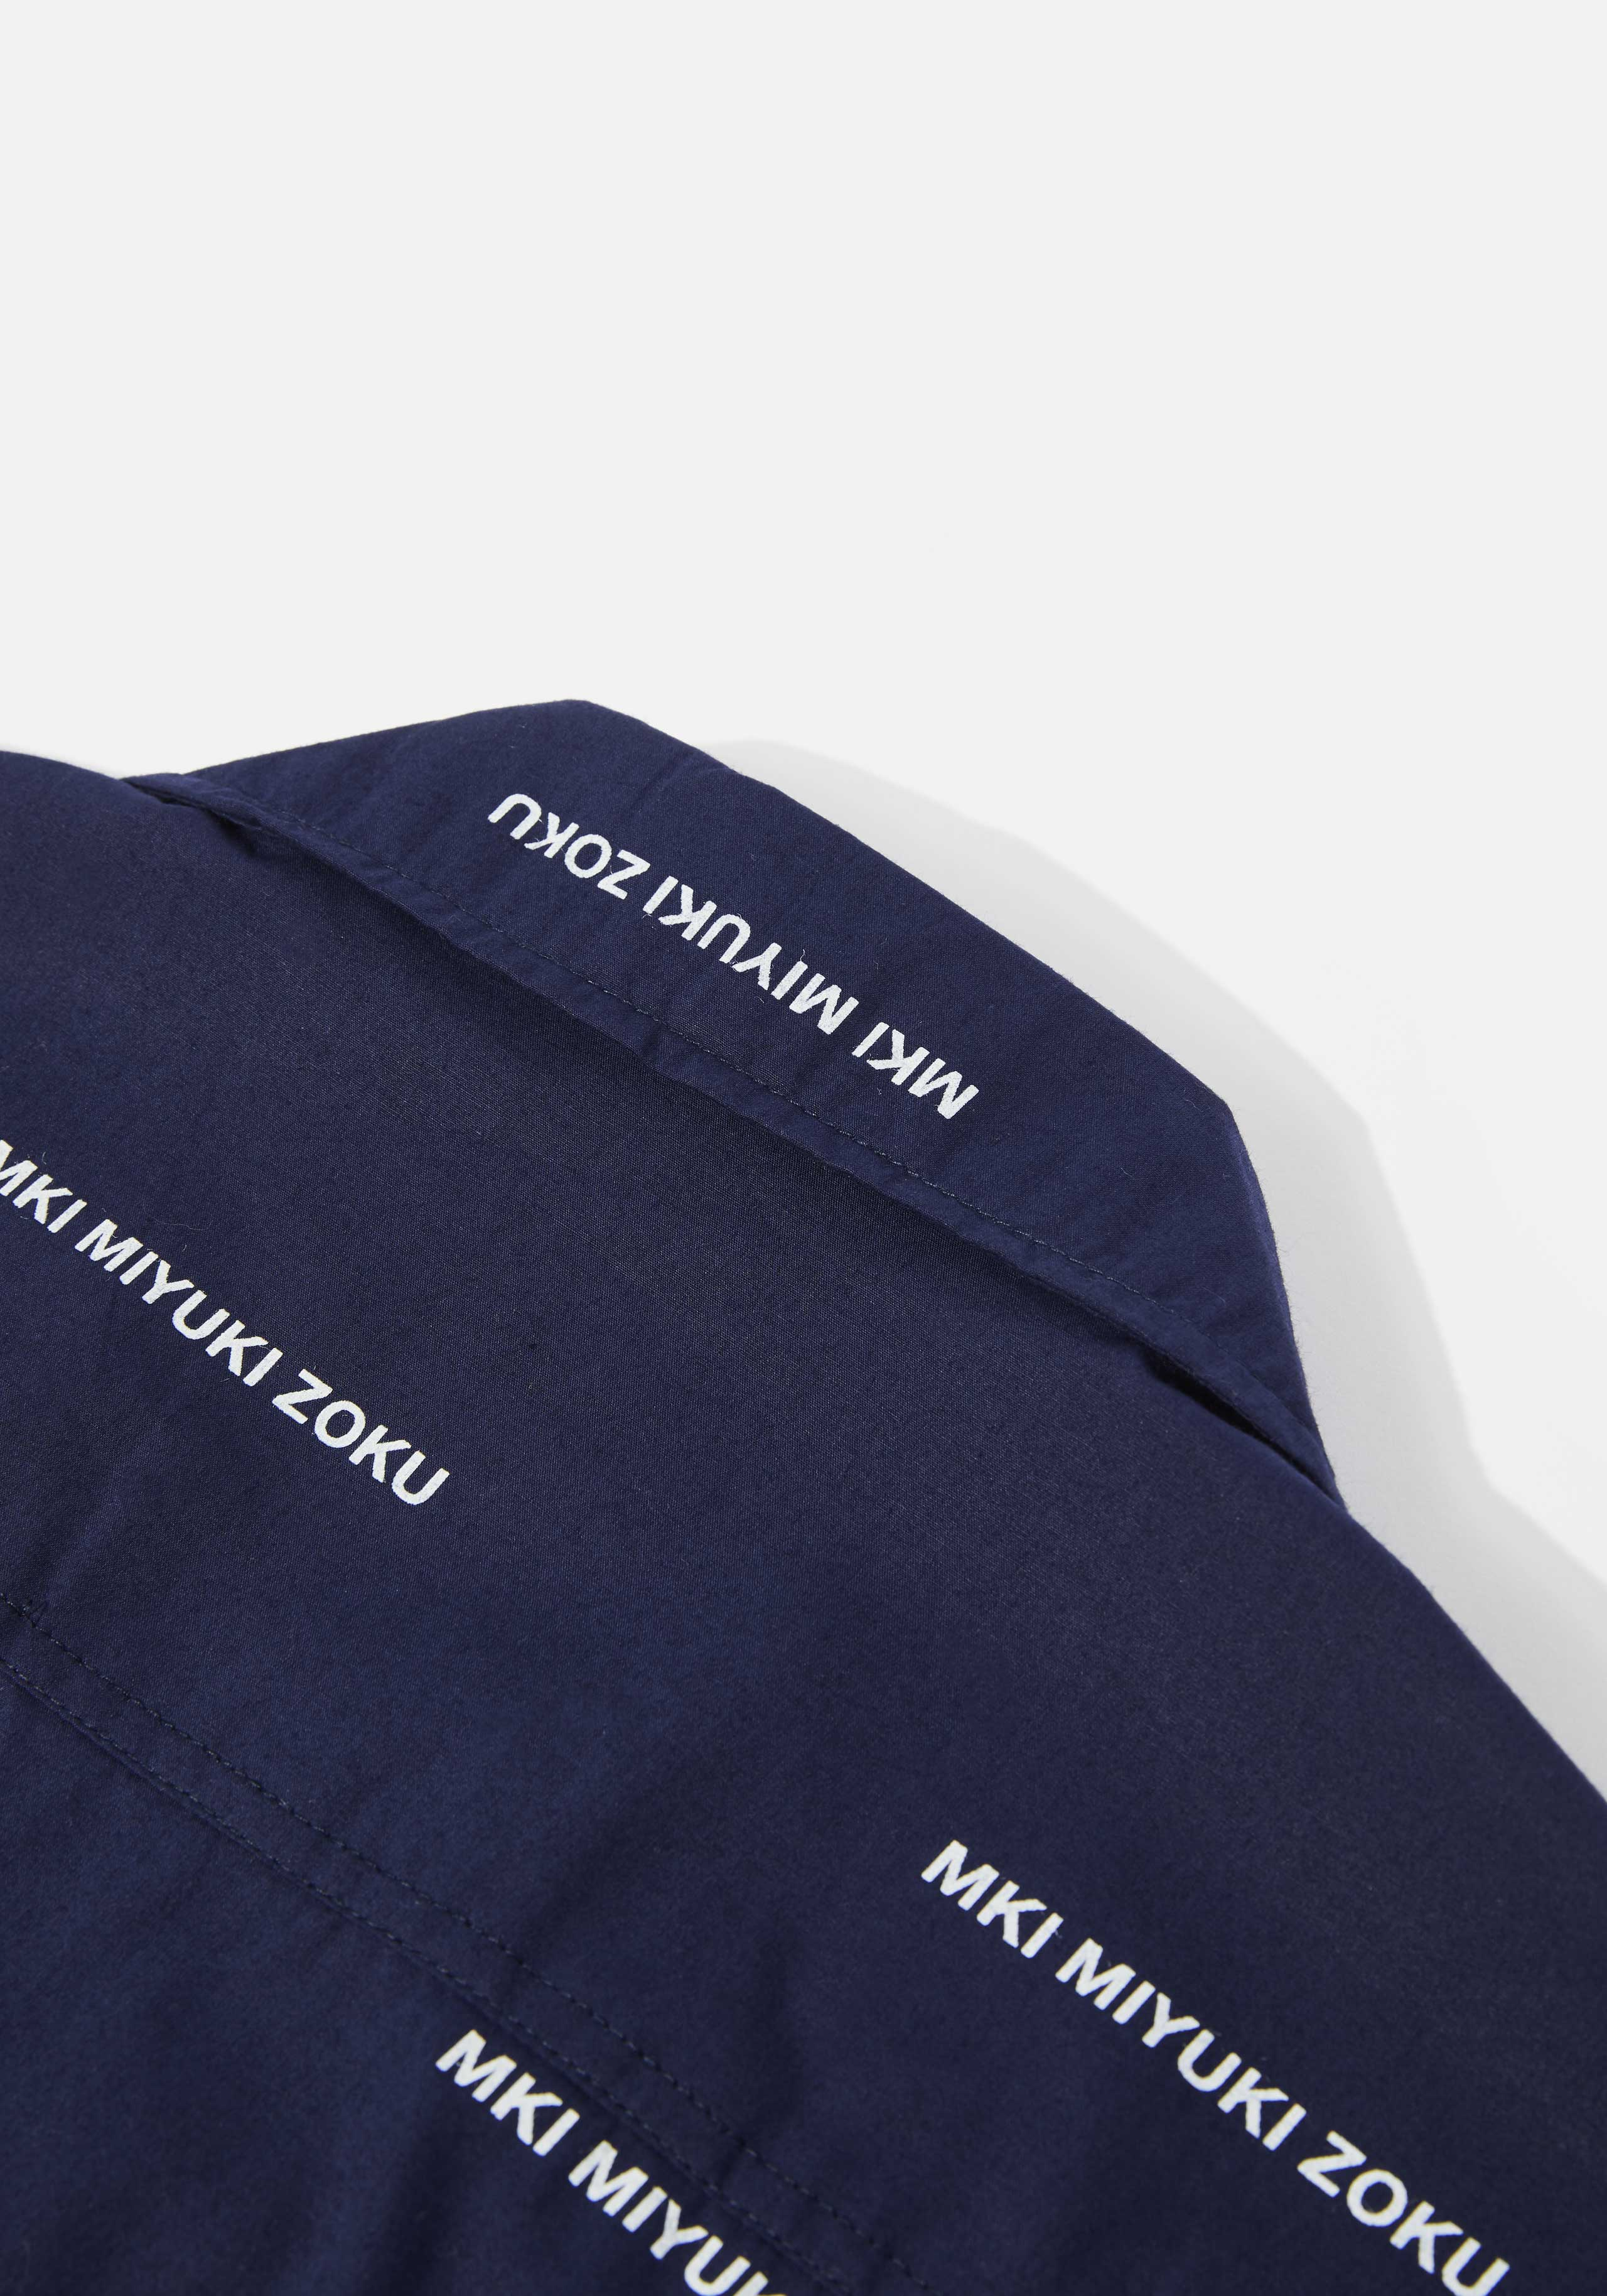 mki logo vacation shirt 4